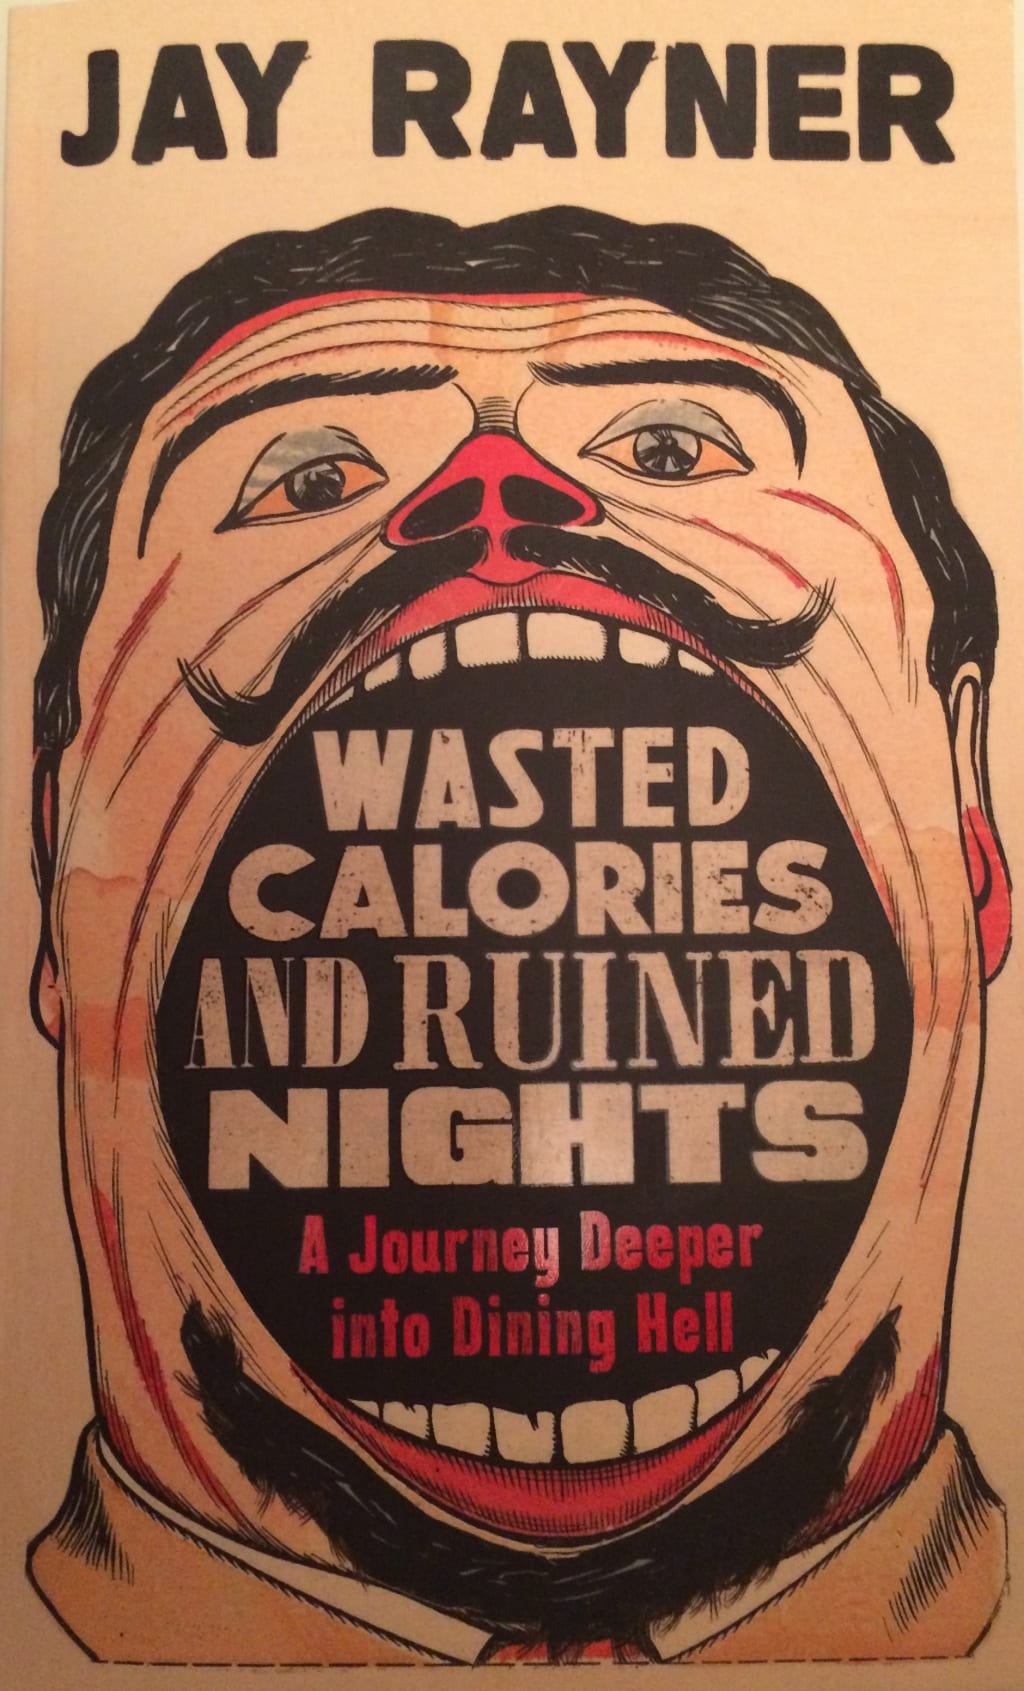 Jay Rayner—'Wasted Calories and Ruined Nights'